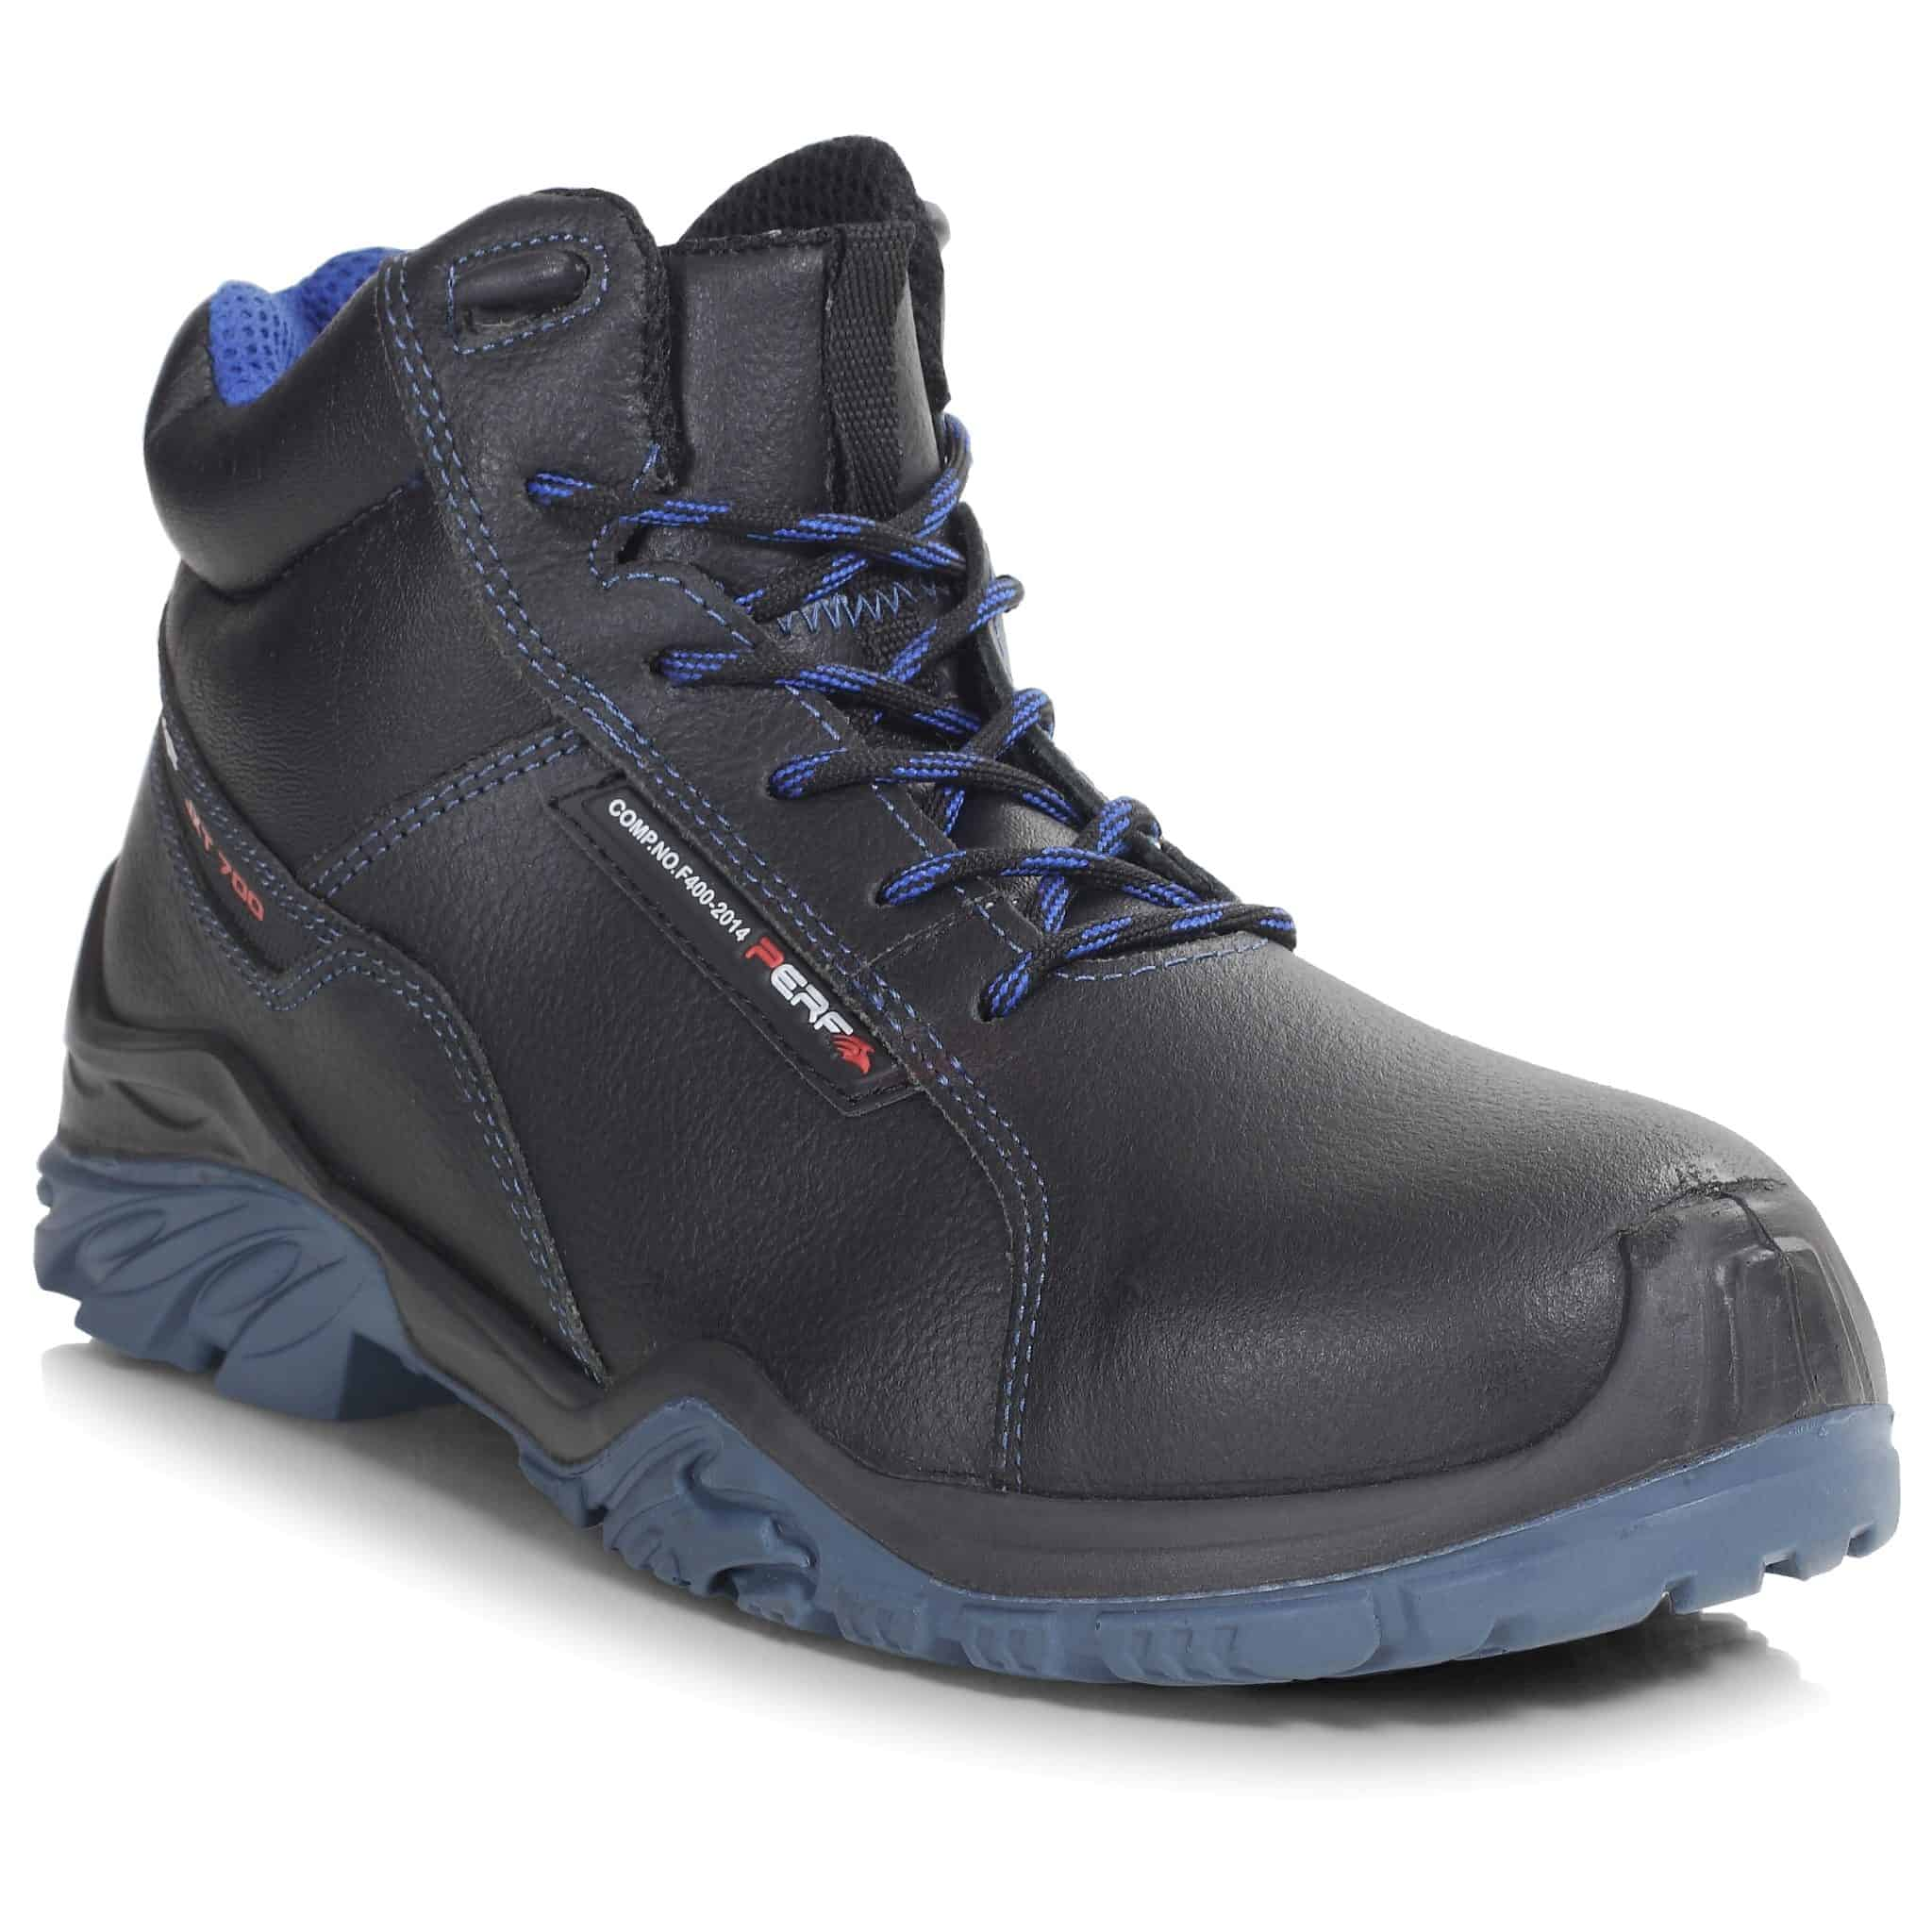 Tornado High FG – Lightweight Non-Metal S3 SRC PU Safety Hiker Boots